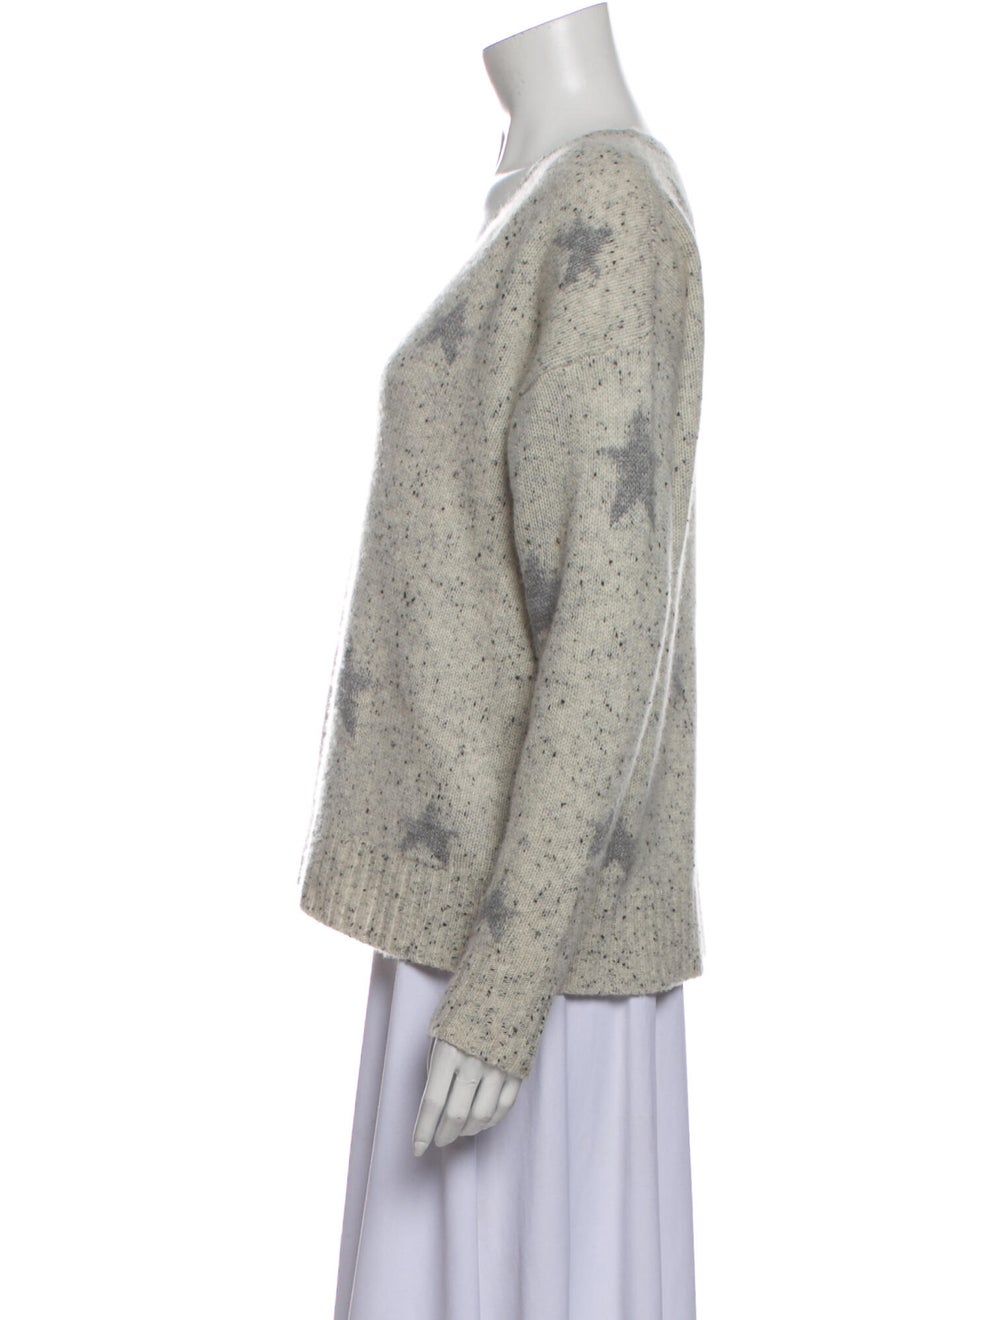 360 Cashmere Cashmere Printed Sweater - image 2